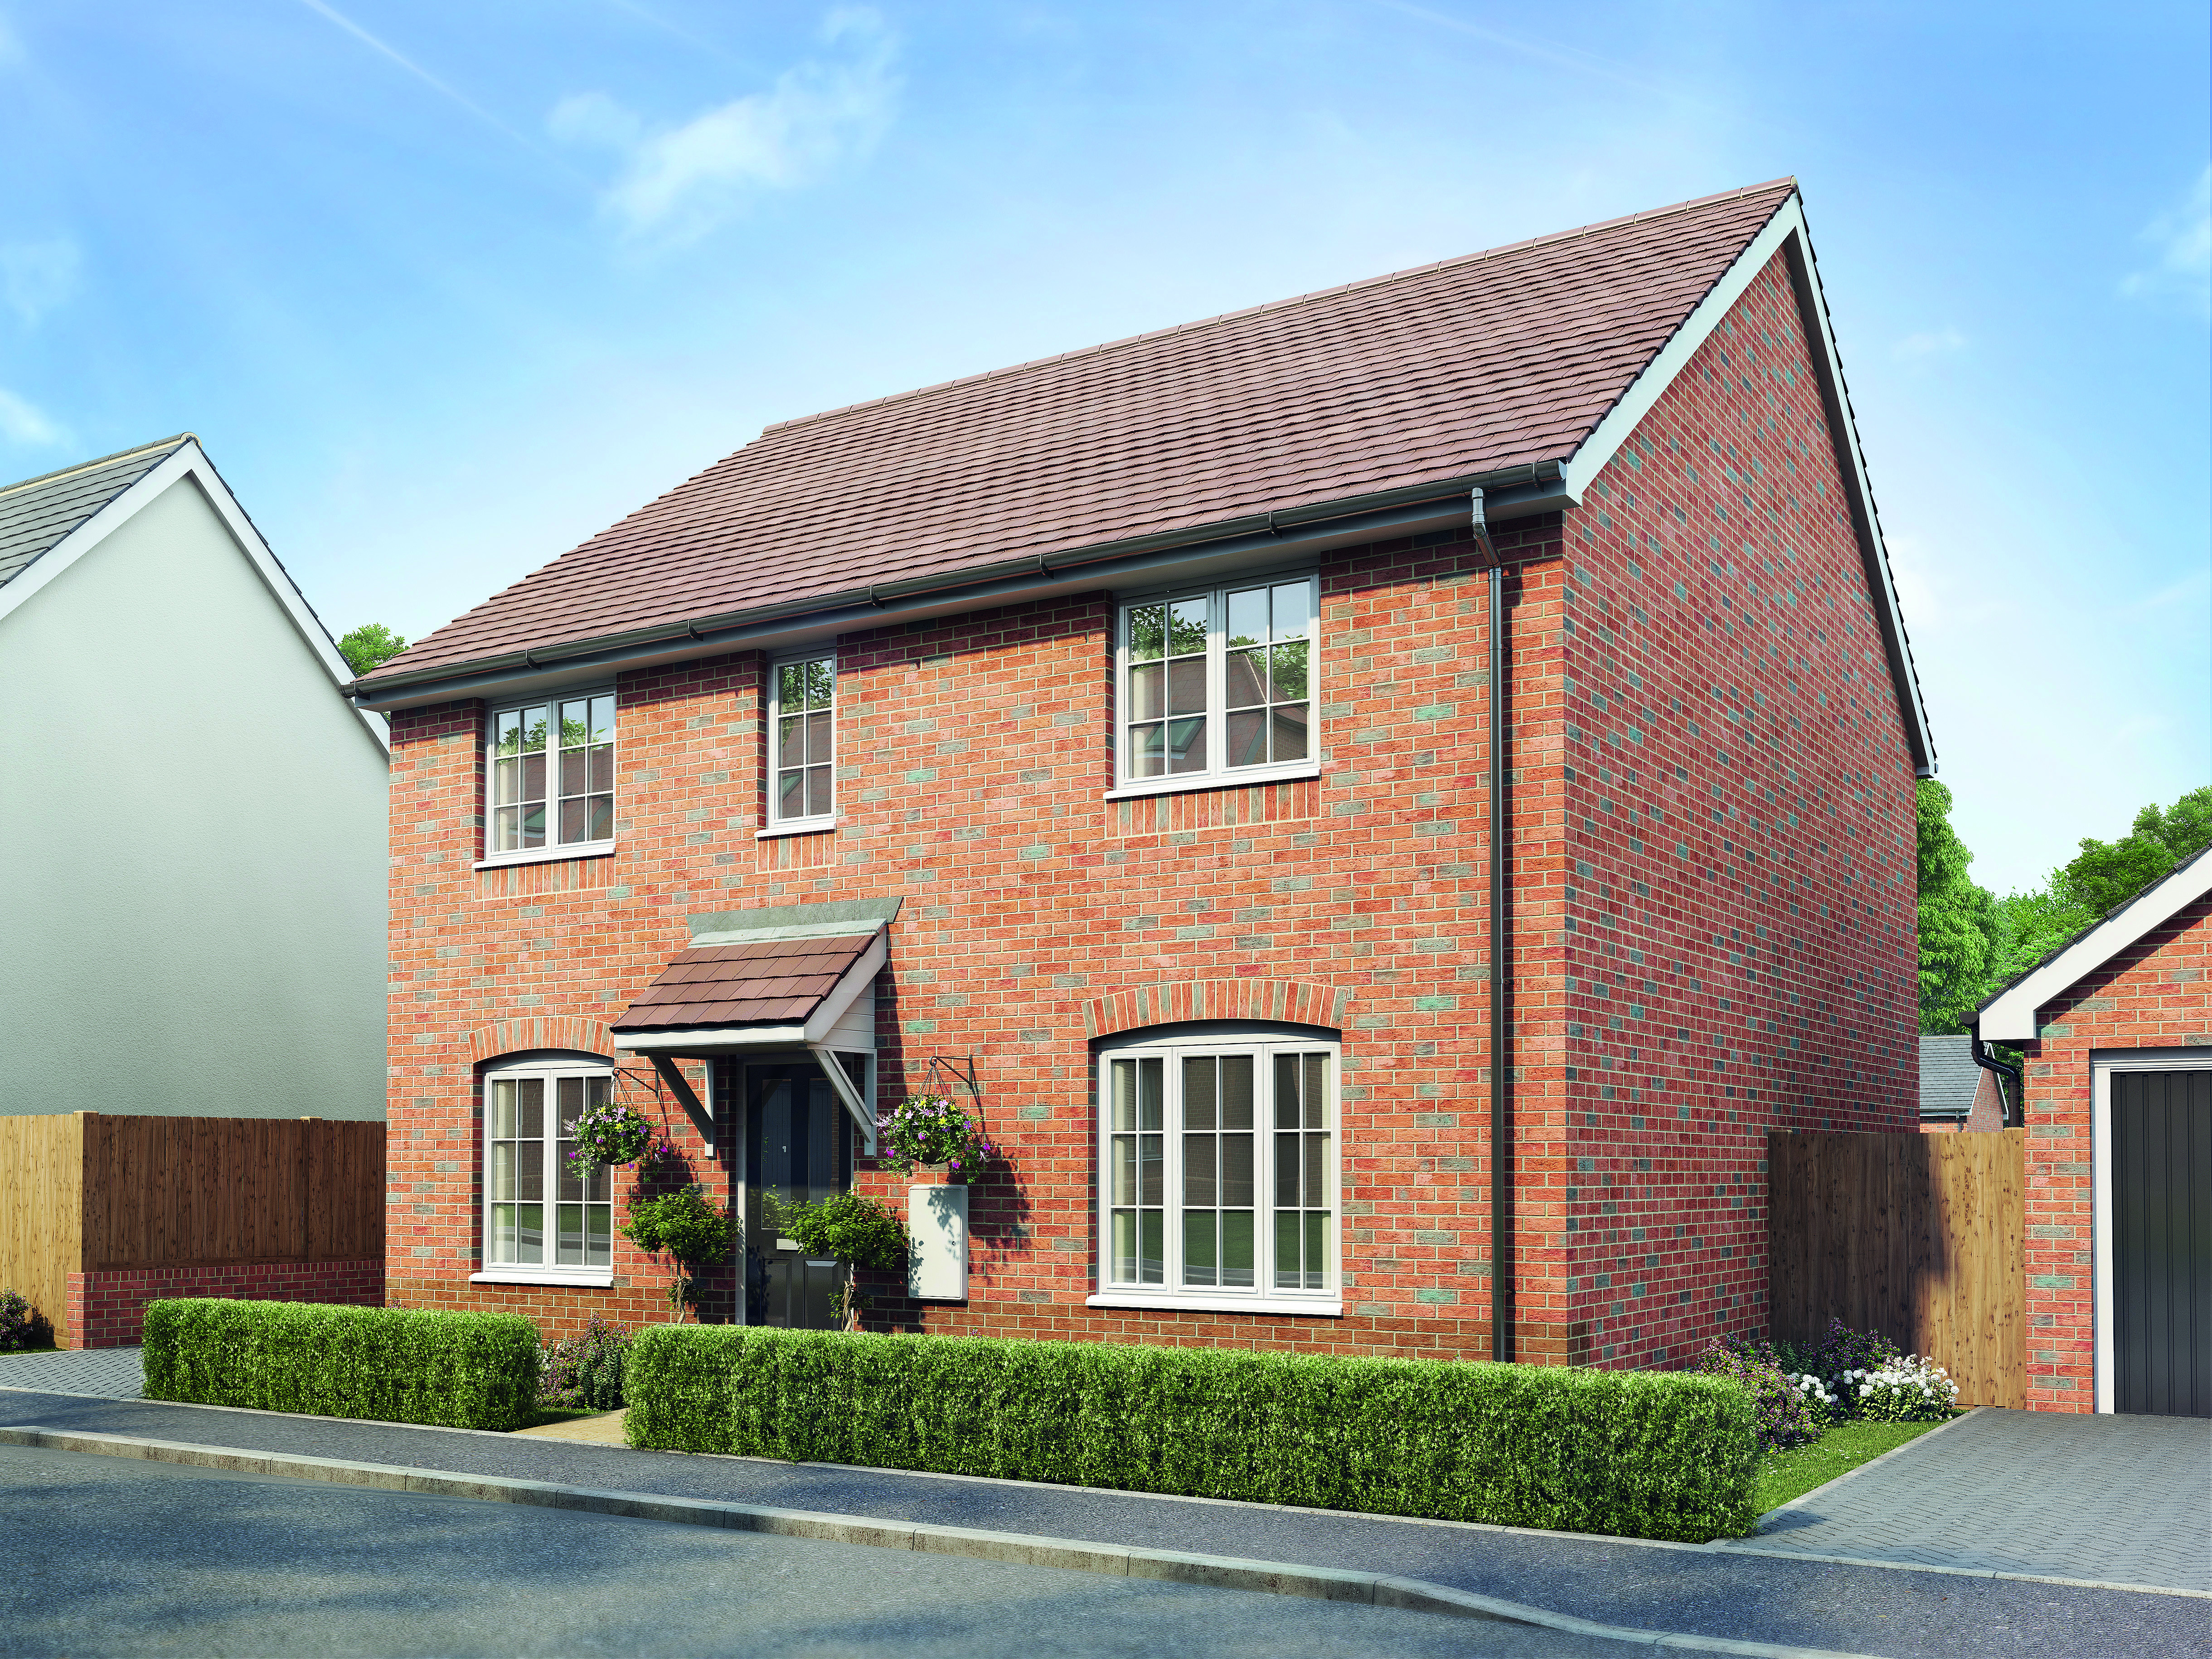 PA48 - Plot 41 - The Shelford